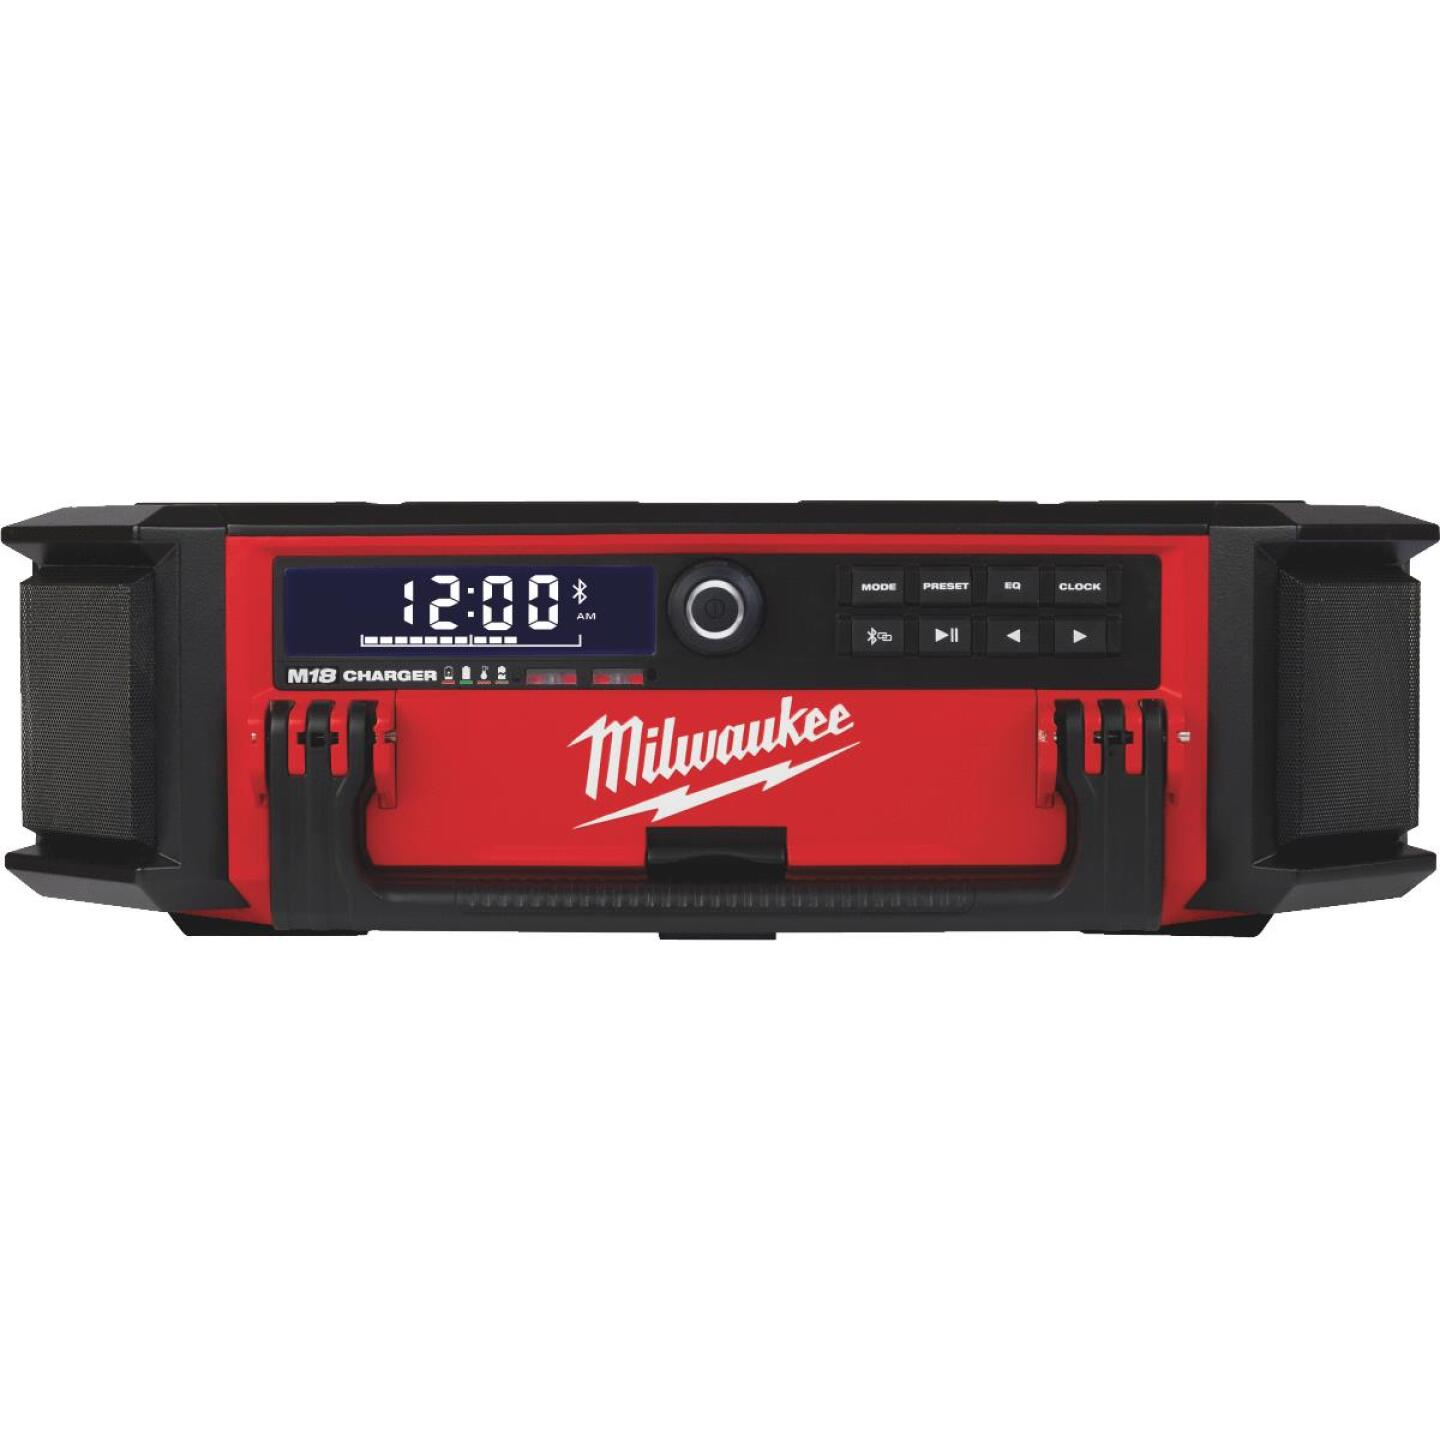 Milwaukee M18 PACKOUT 18 Volt Lithium-Ion Cordless Jobsite Radio and Battery Charger Image 1